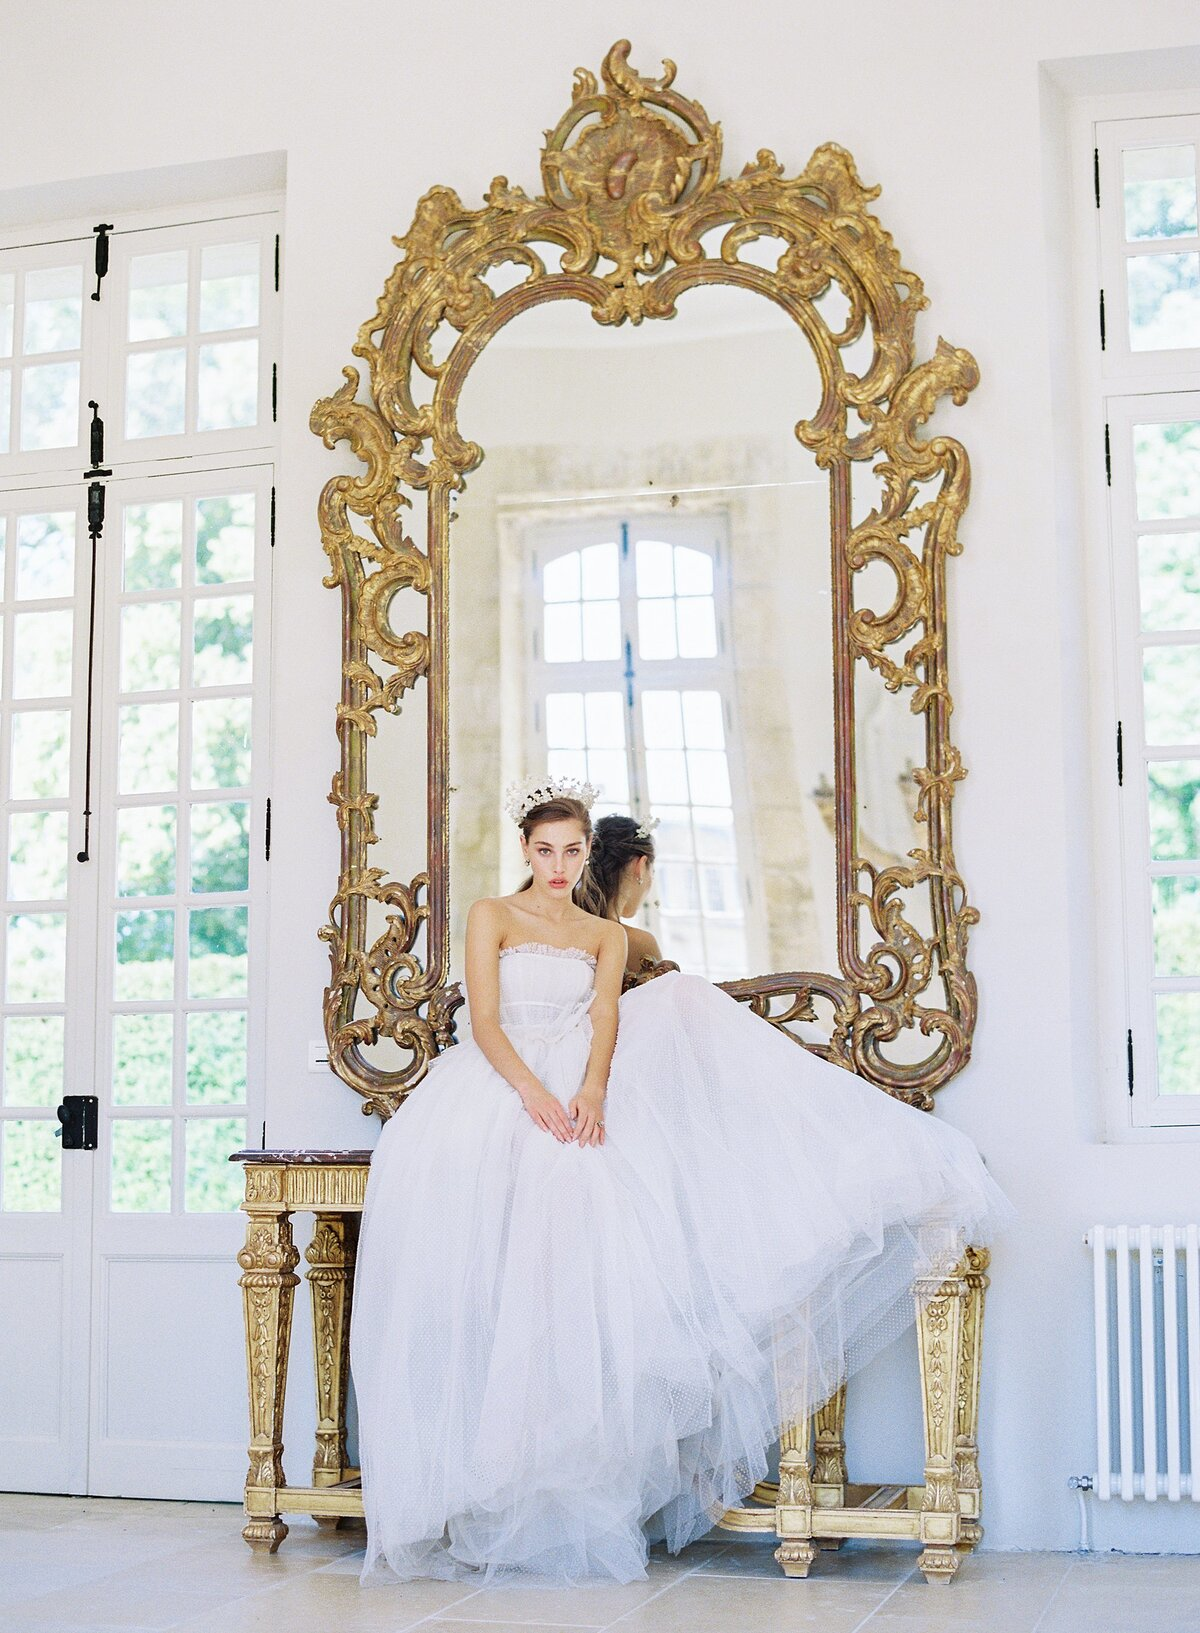 NKT-Events_Wedding-Inspiration-Editorial_Chateau-de-Villette-Bridal_0133